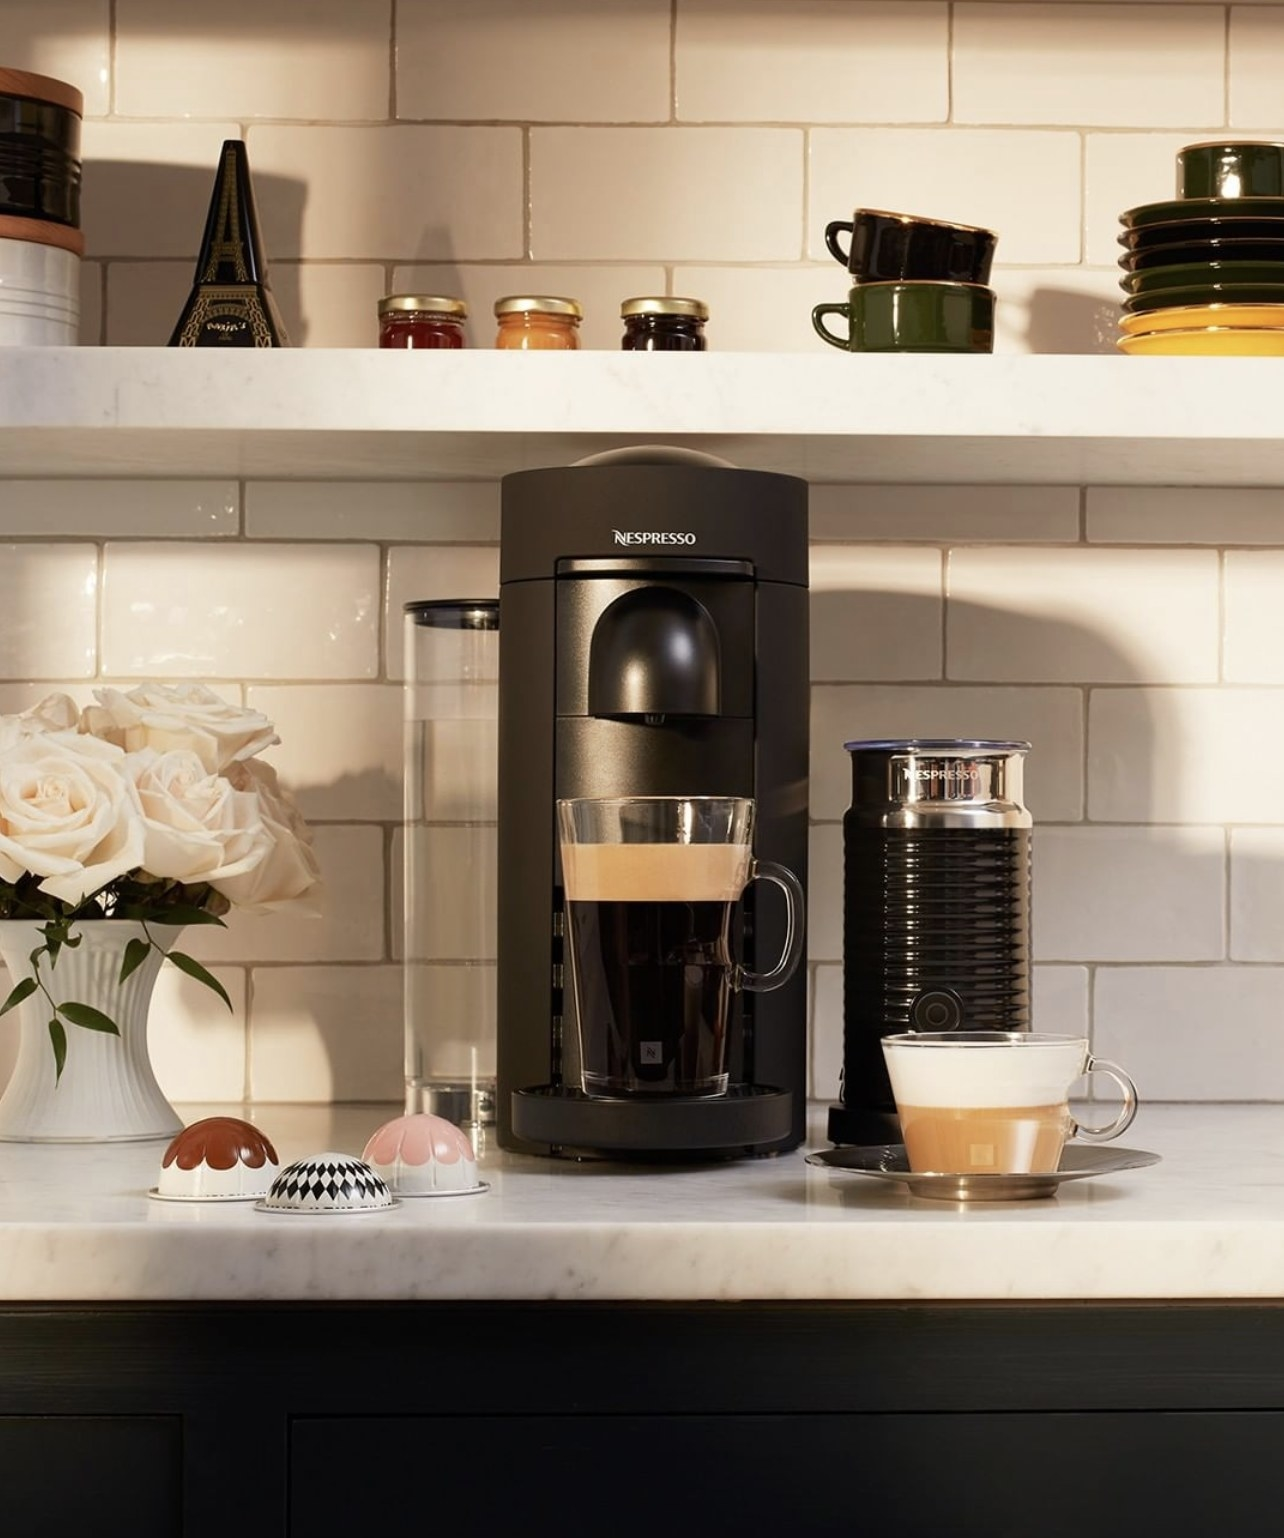 A black coffee maker with a glass full of coffee resting in its base